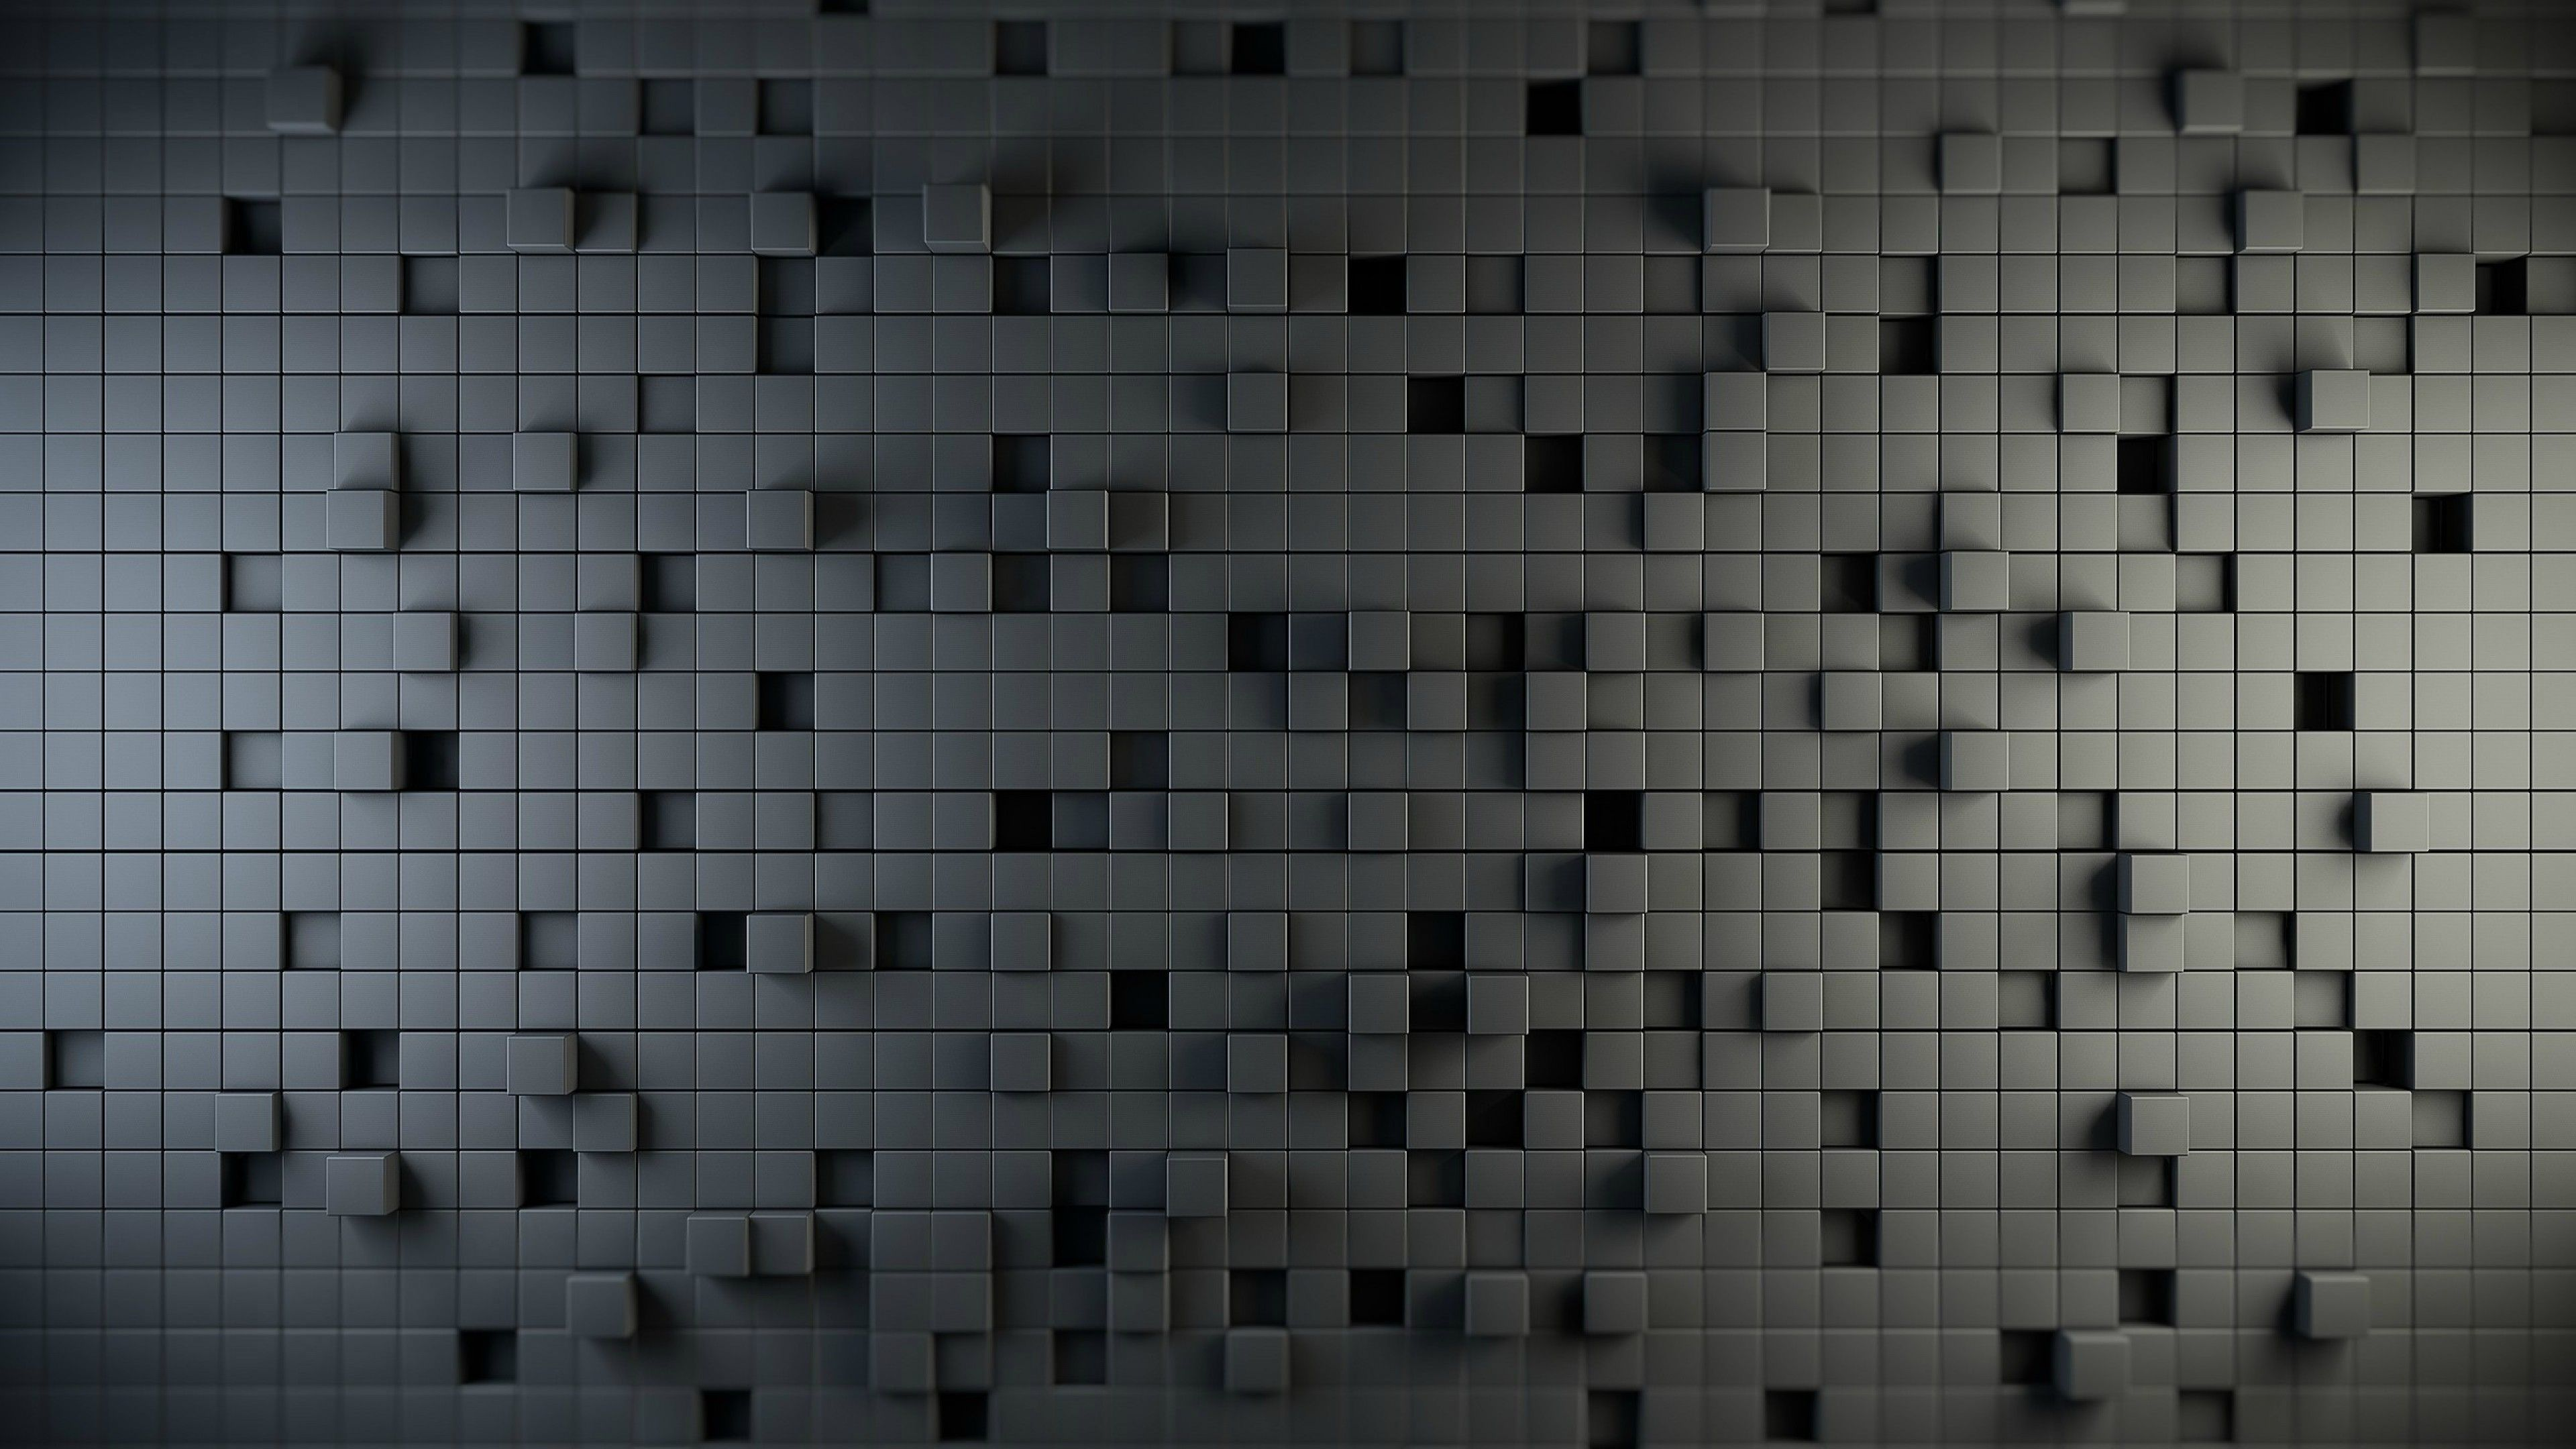 3840x2160 3D Abstract Grey Square Hd Wallpaper for Desktop and Mobiles ...